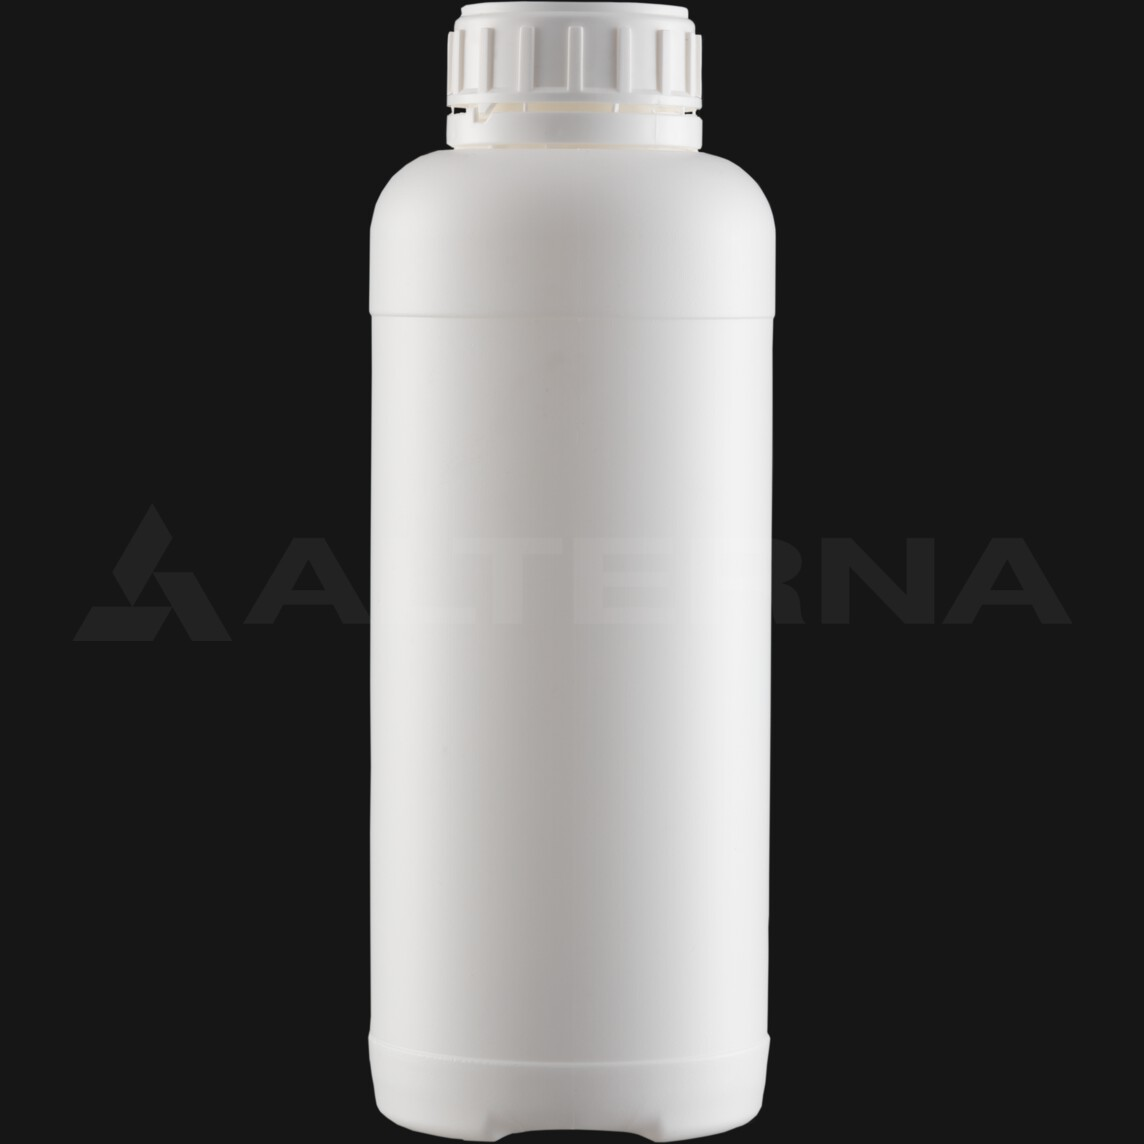 1000 ml HDPE Bottle with 50 mm Foam Seal Secure Cap